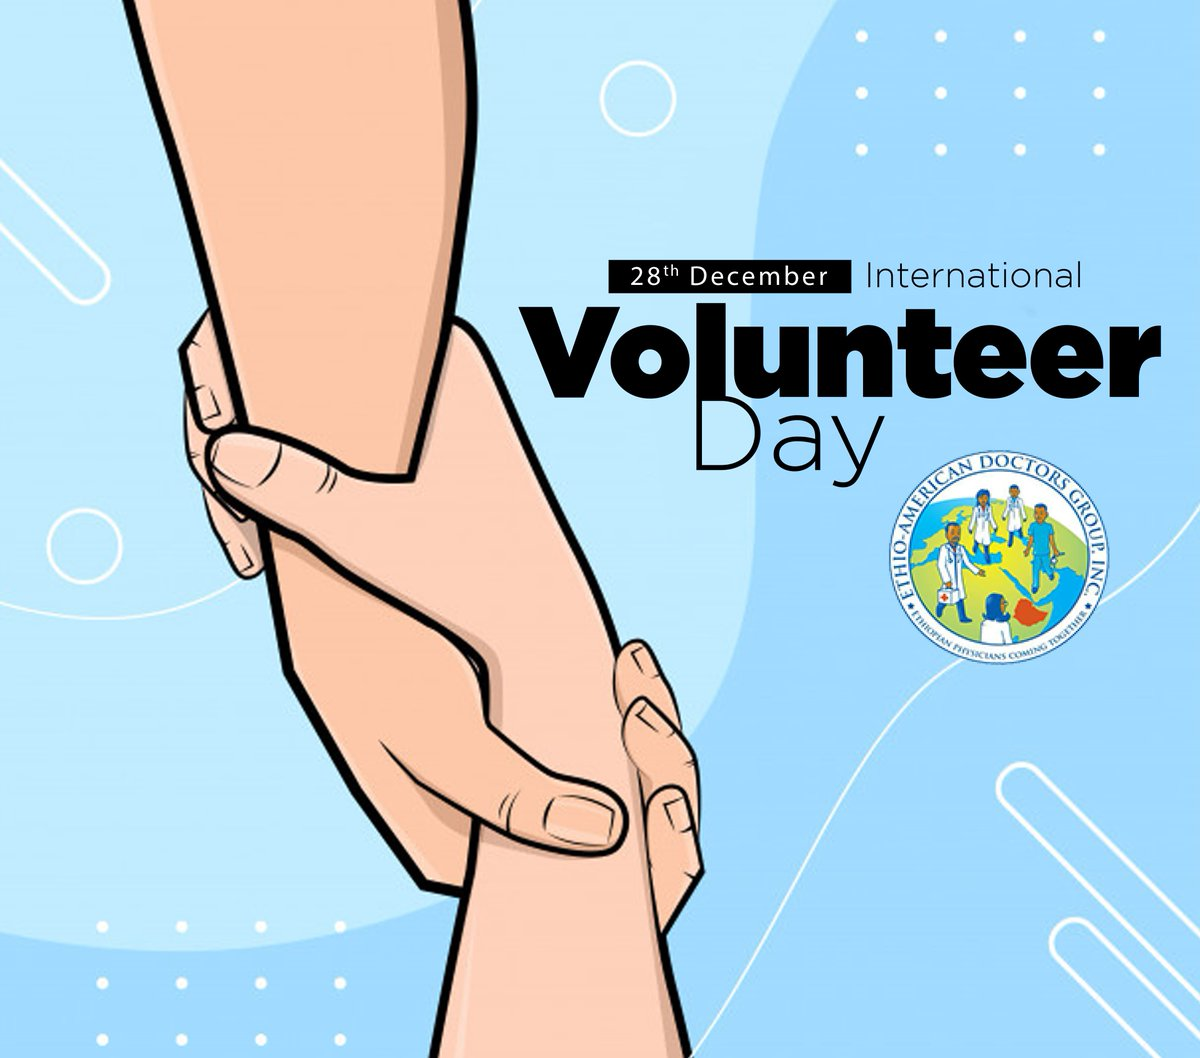 Your role as a volunteer gives you a sense of pride and identity as you grow yourself from a volunteer into a fighter that can stand alone. As you're doing your volunteer work you should always keep in mind that you're doing something very meaningful #InternationalVolunteerDay